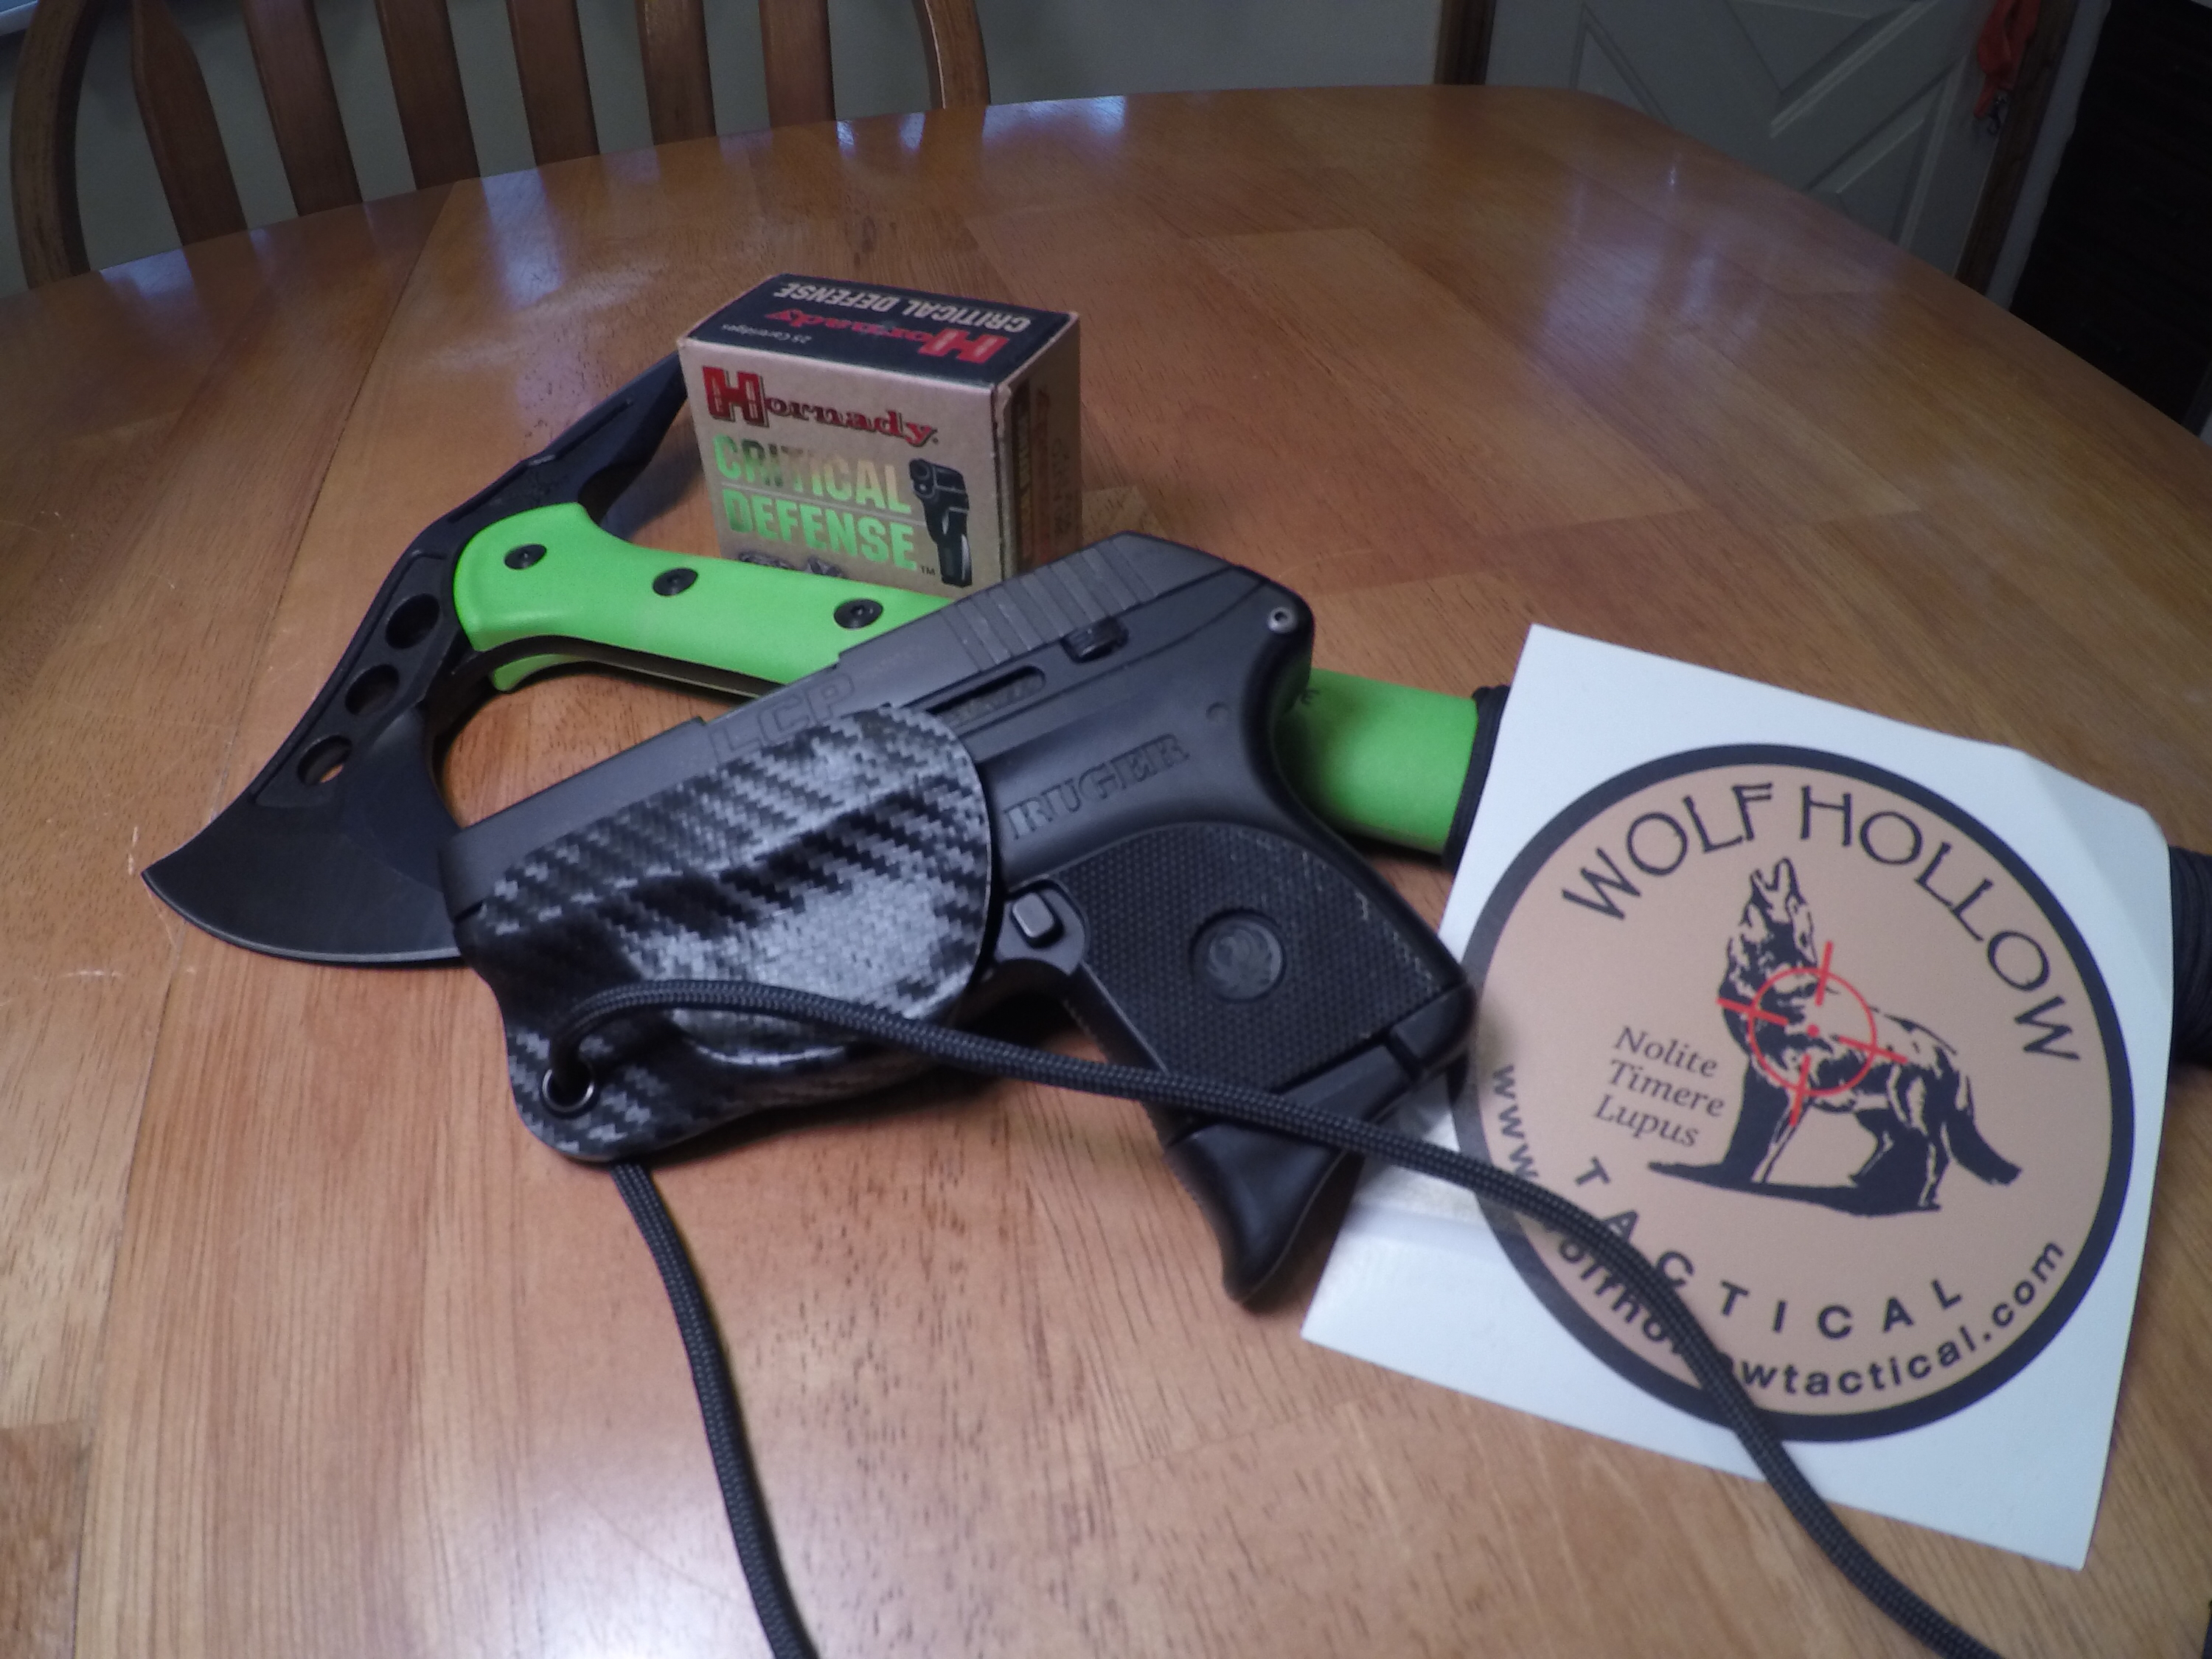 This might be the best solution yet for pocket carry, esp. light triggers-img_2747.jpg